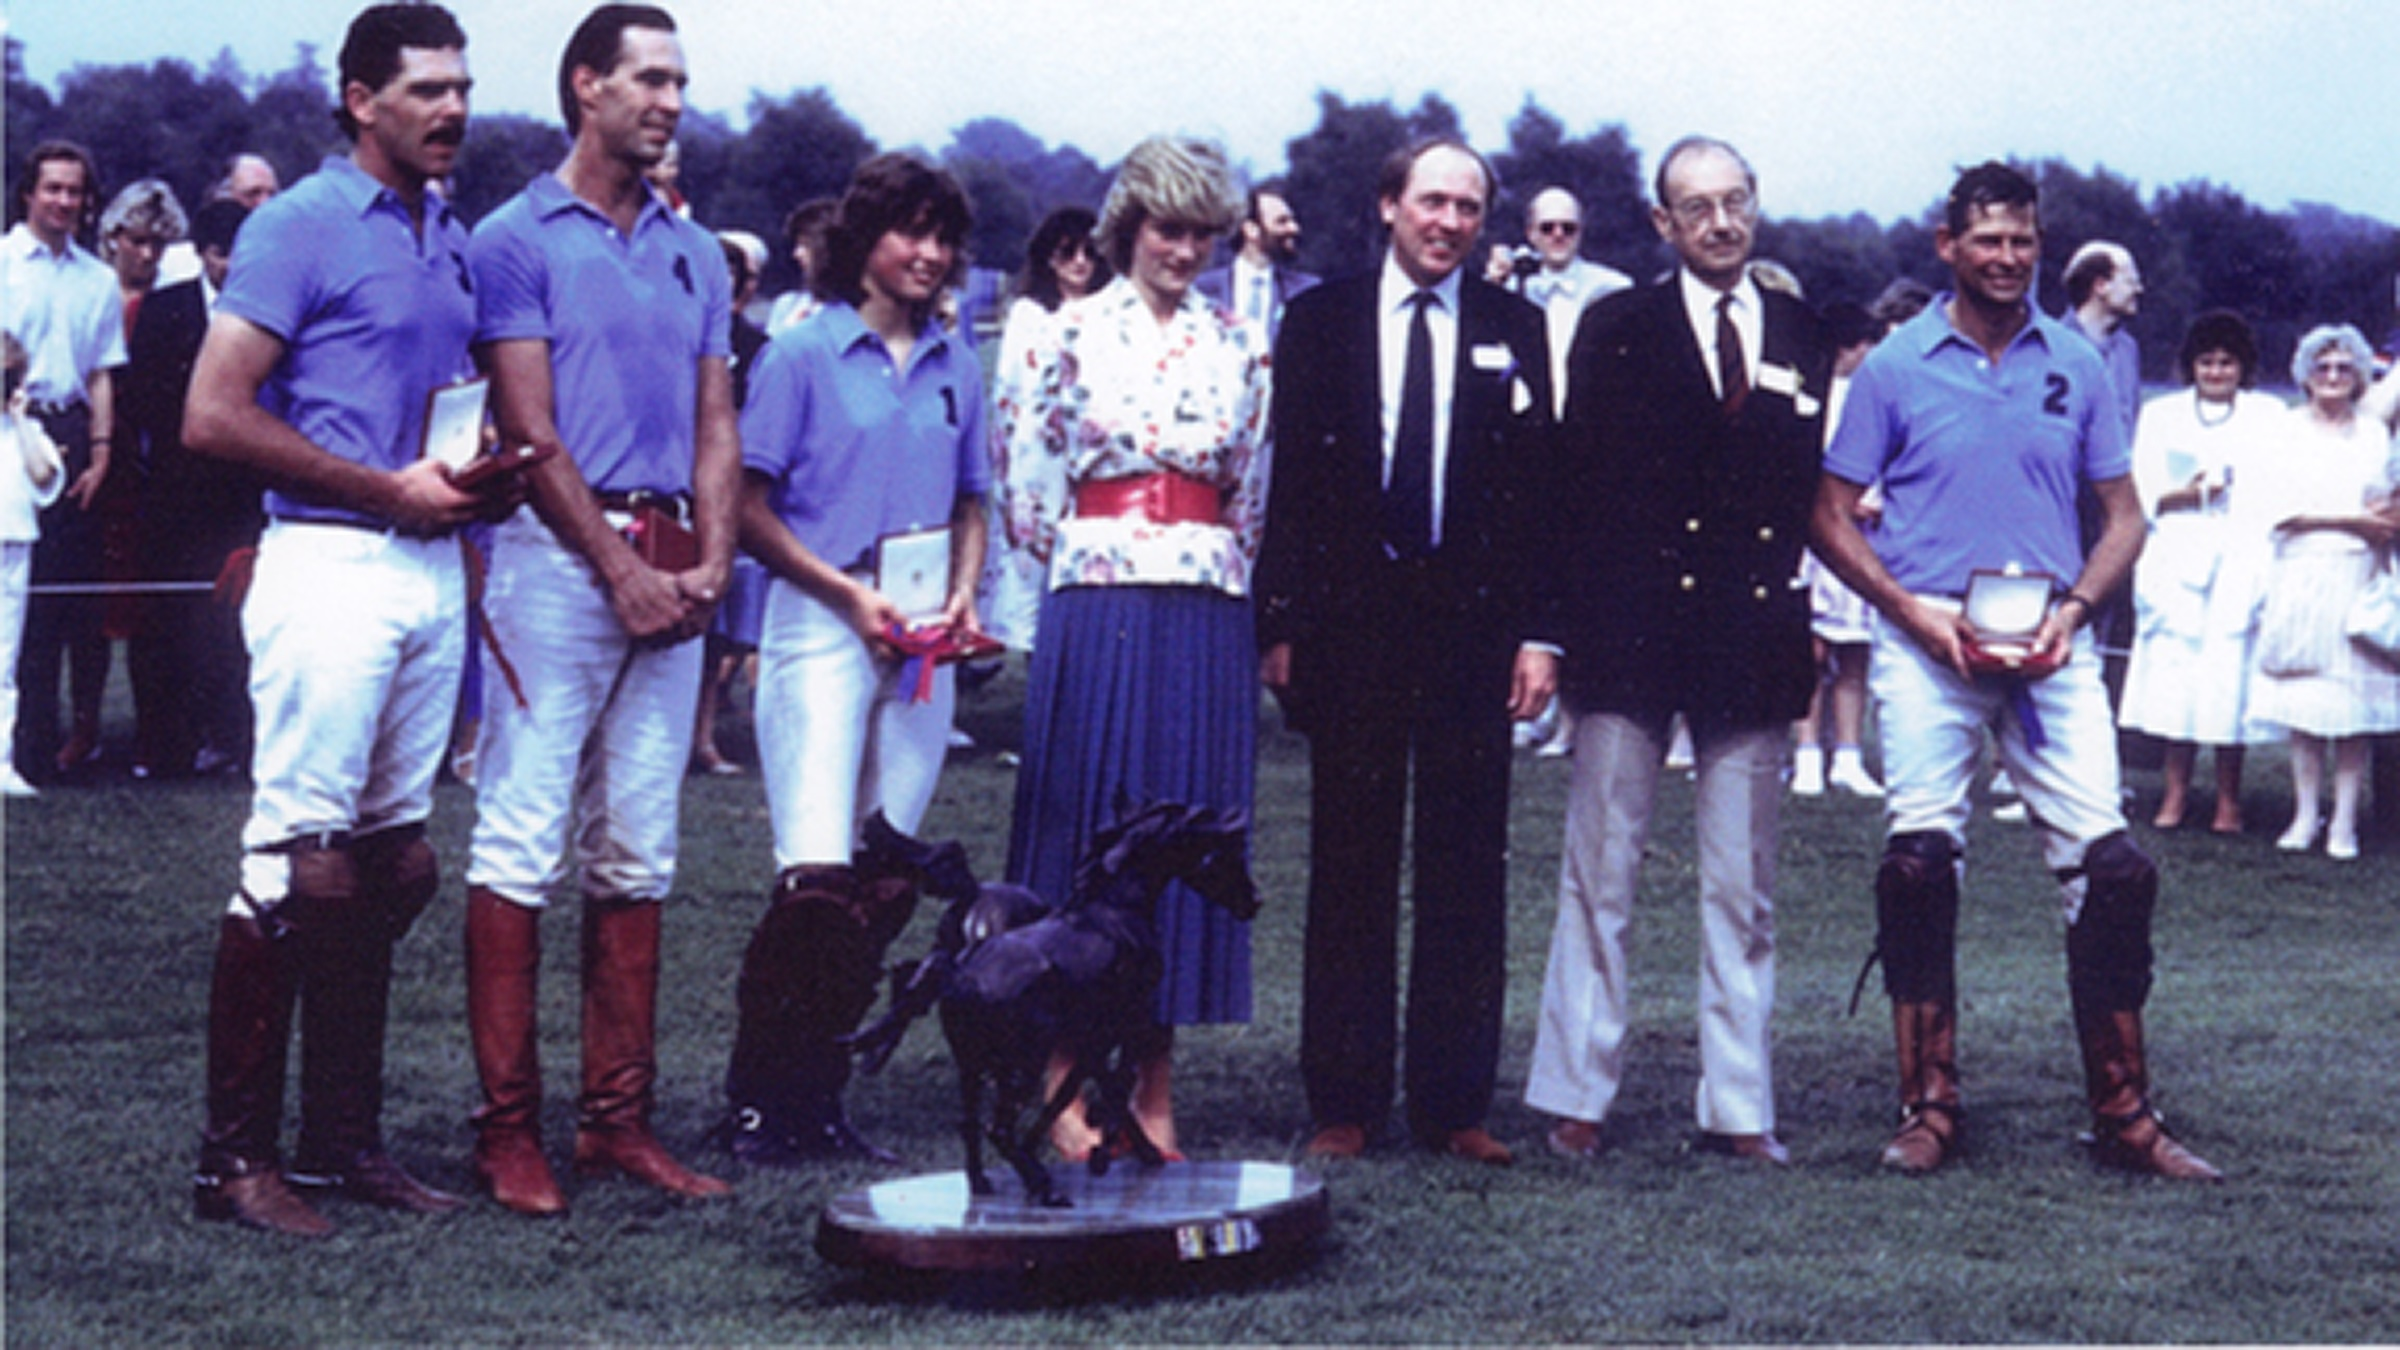 Victoria and her father Peter Grace OBE, being awarded the Dorchester Trophy at Guards Polo Club by Princess Diana having played against HRH Prince of Wales